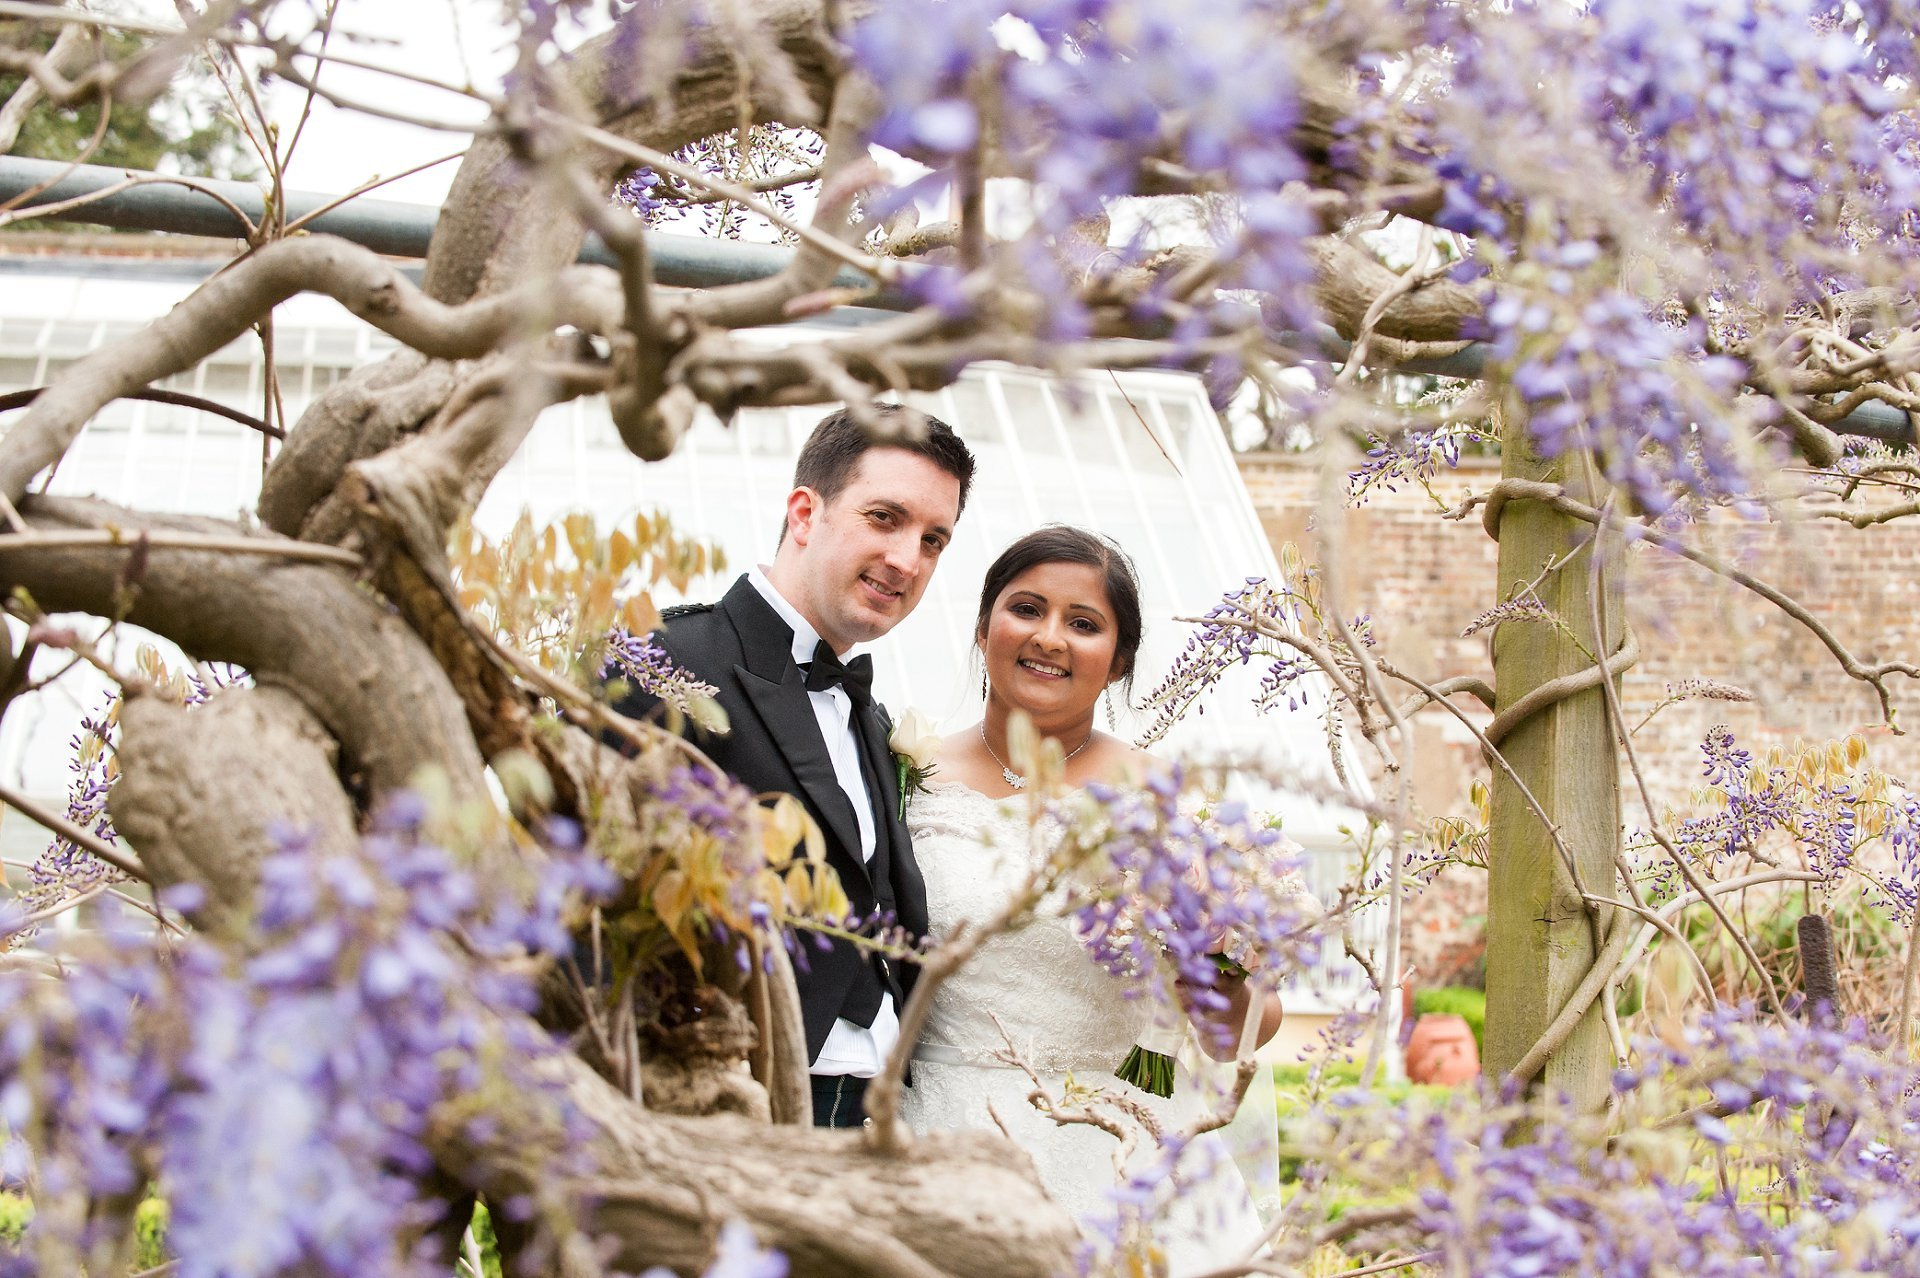 Bride & Groom framed by wisteria at Fulham Palace